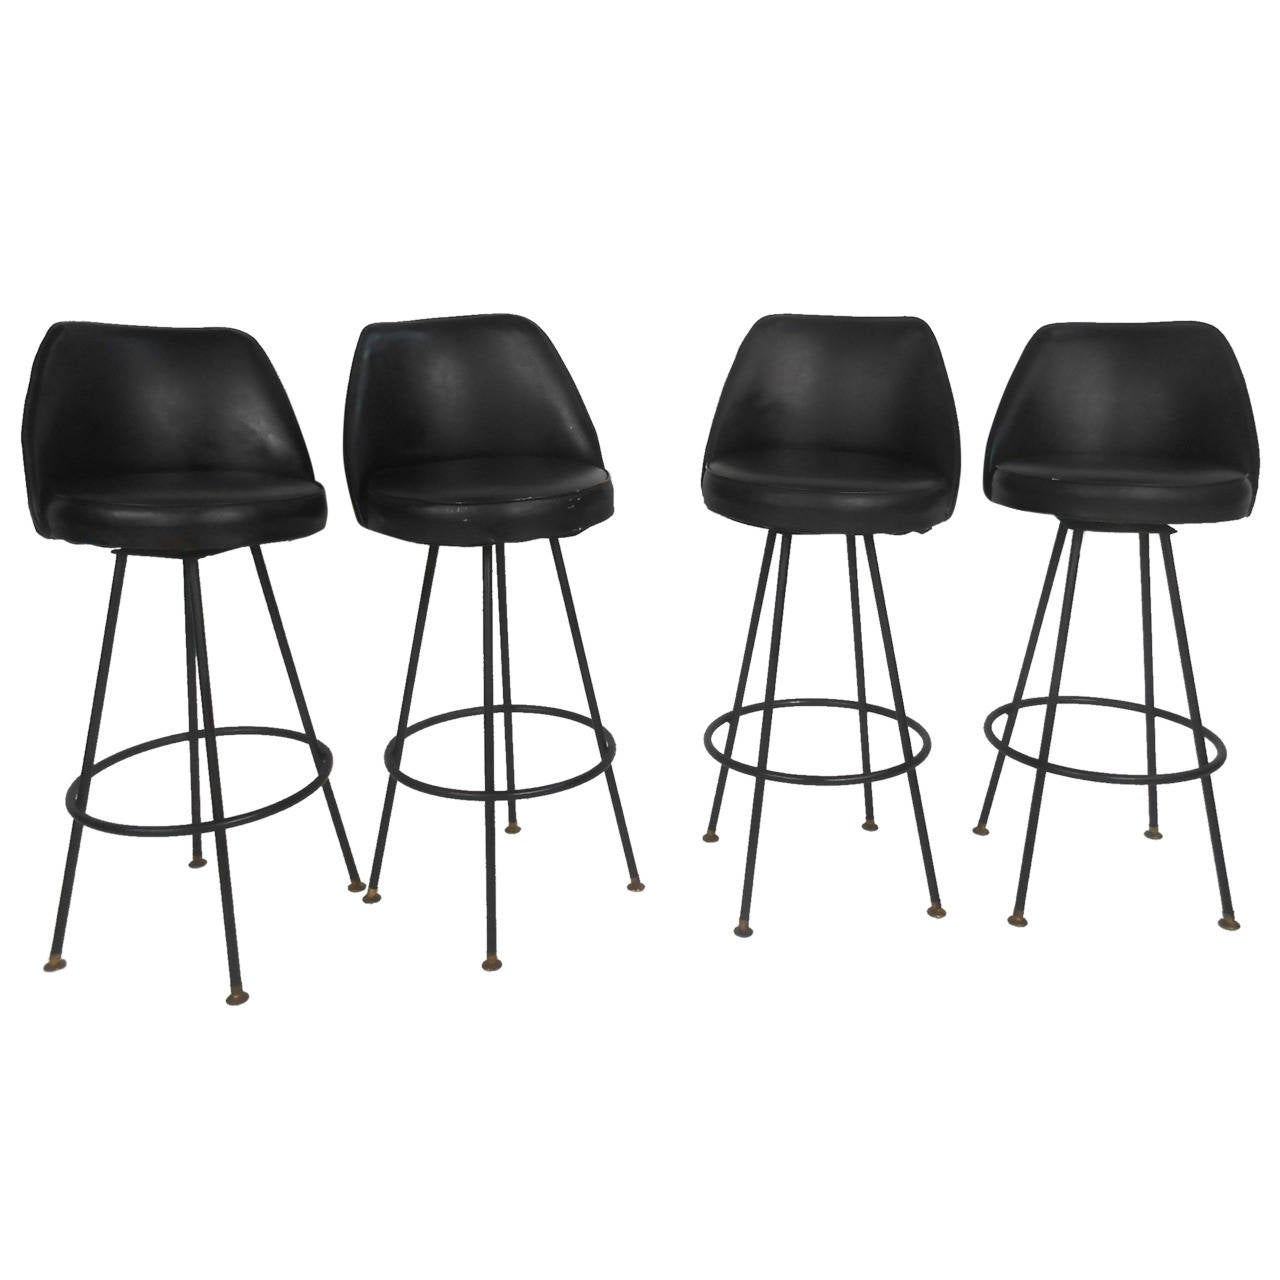 four midcentury modern bar stools by admiral chrome corporation  - four midcentury modern bar stools by admiral chrome corporation